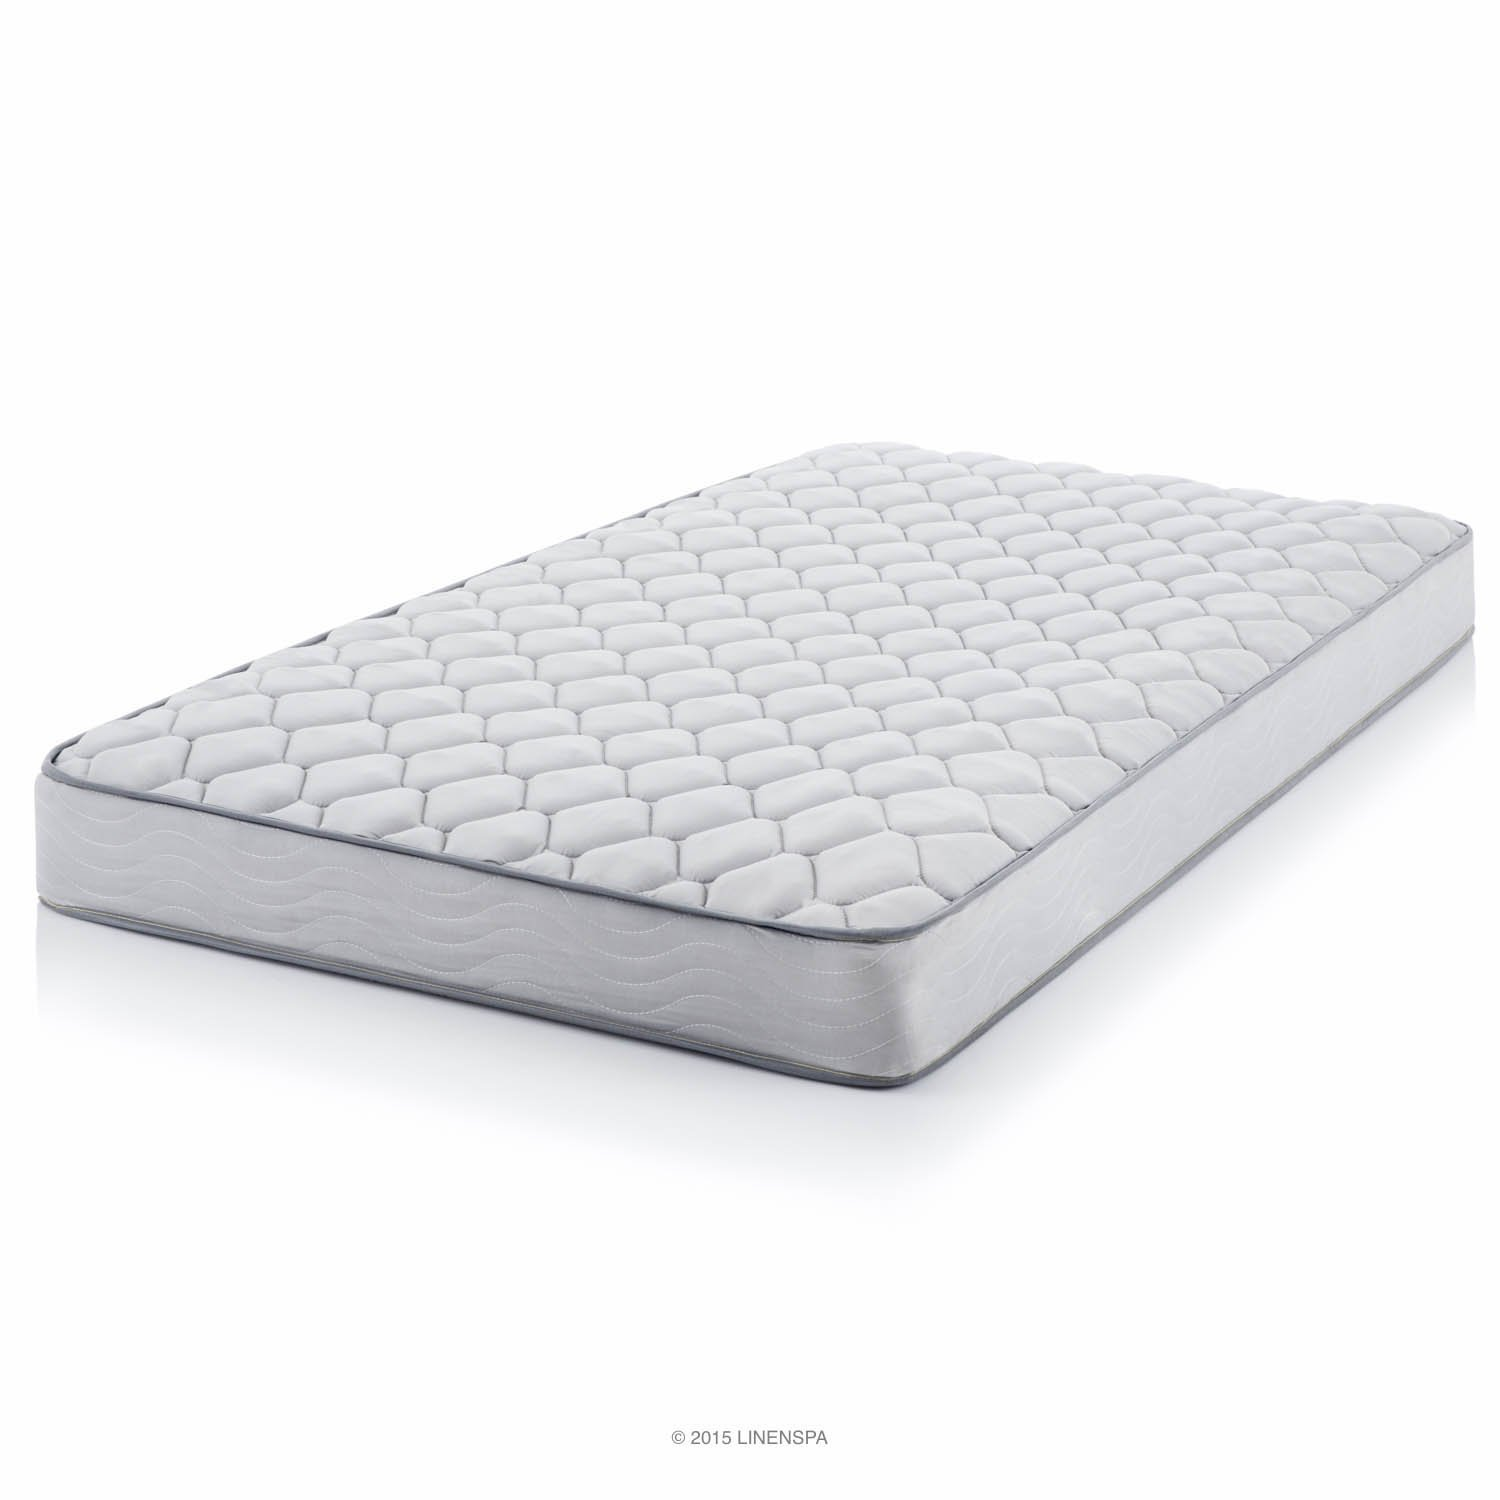 LinenSpa 6 inch Innerspring Mattress, Queen